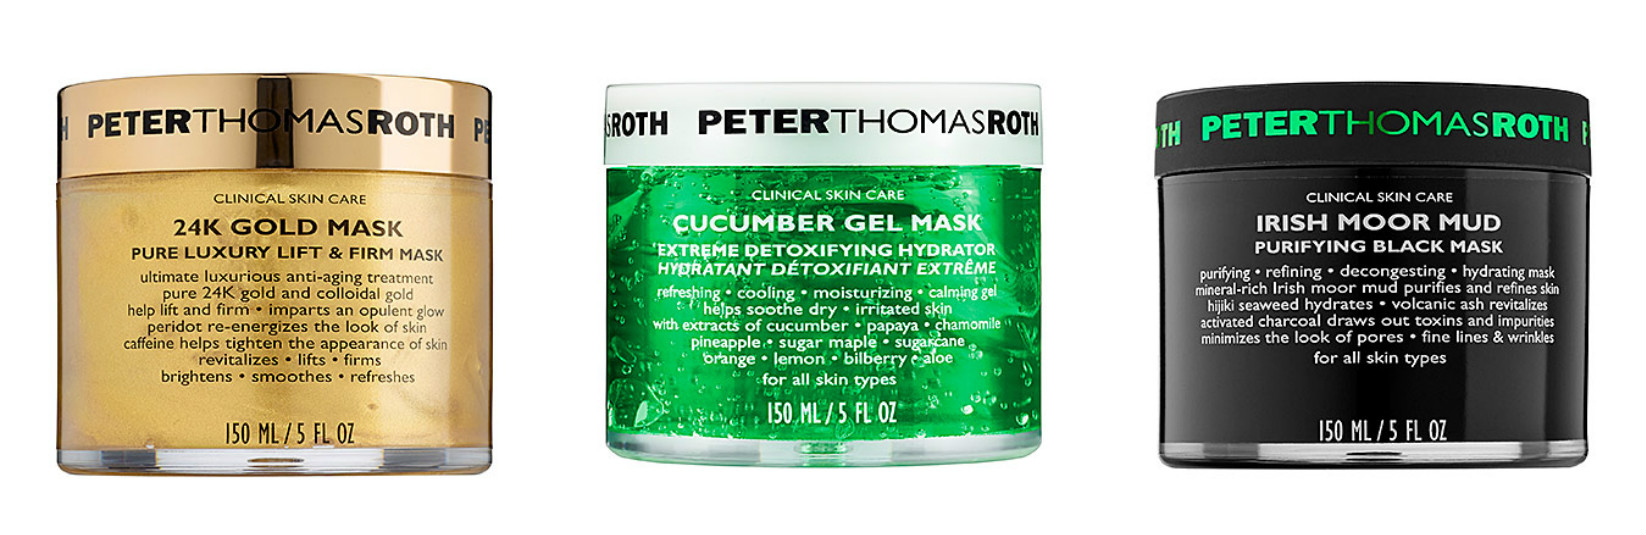 Facial Masks I Love Peter Thomas Roth